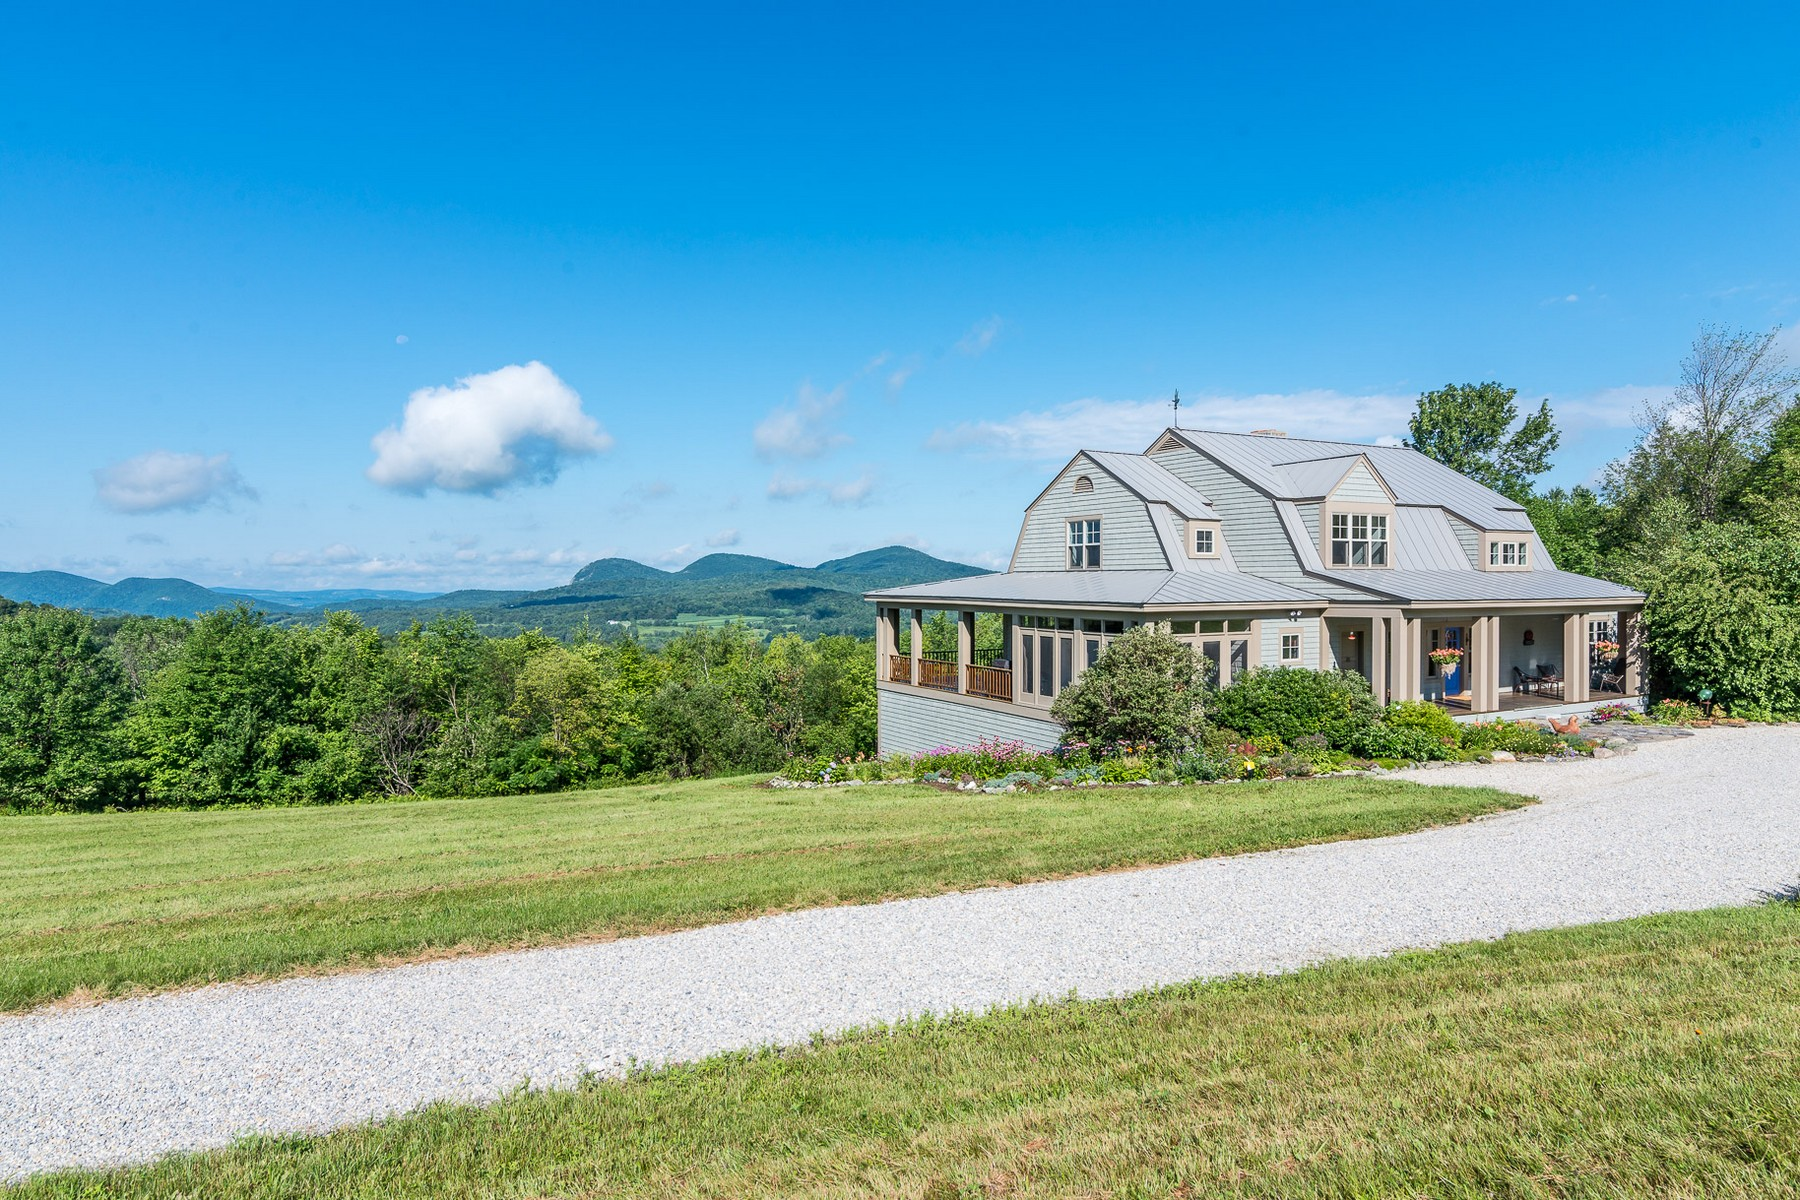 Single Family Home for Sale at 1638 Lilly Hill Rd, Danby Danby, 05761 United States